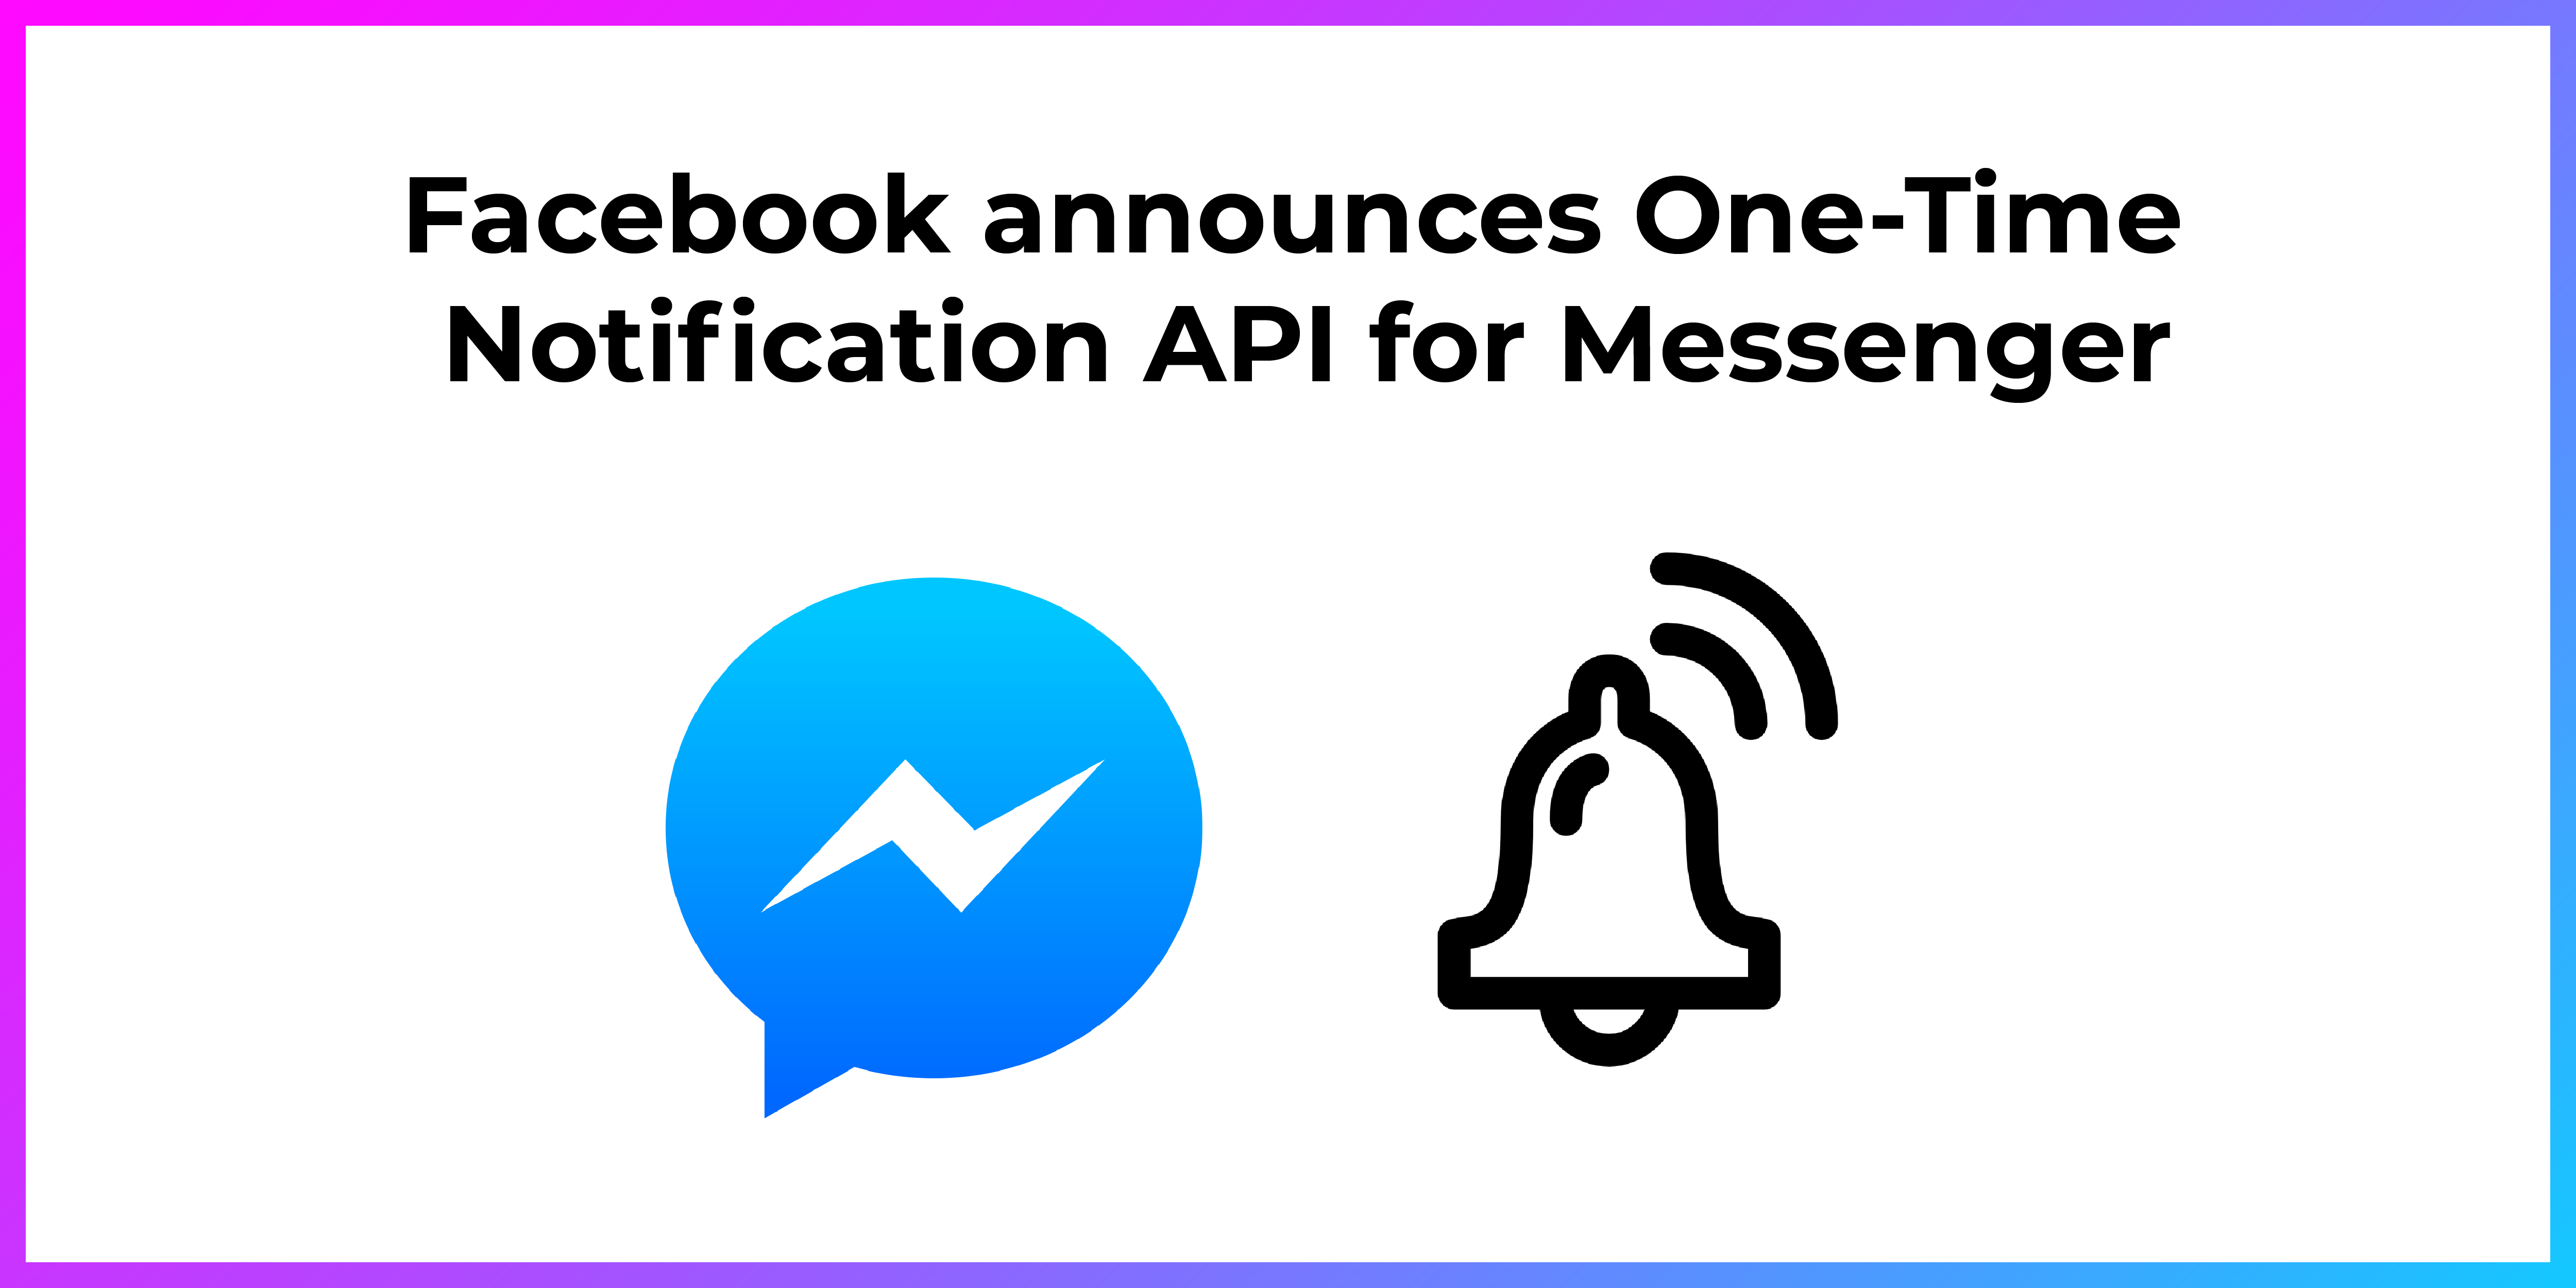 Facebook announces One-Time Notification API for Messenger